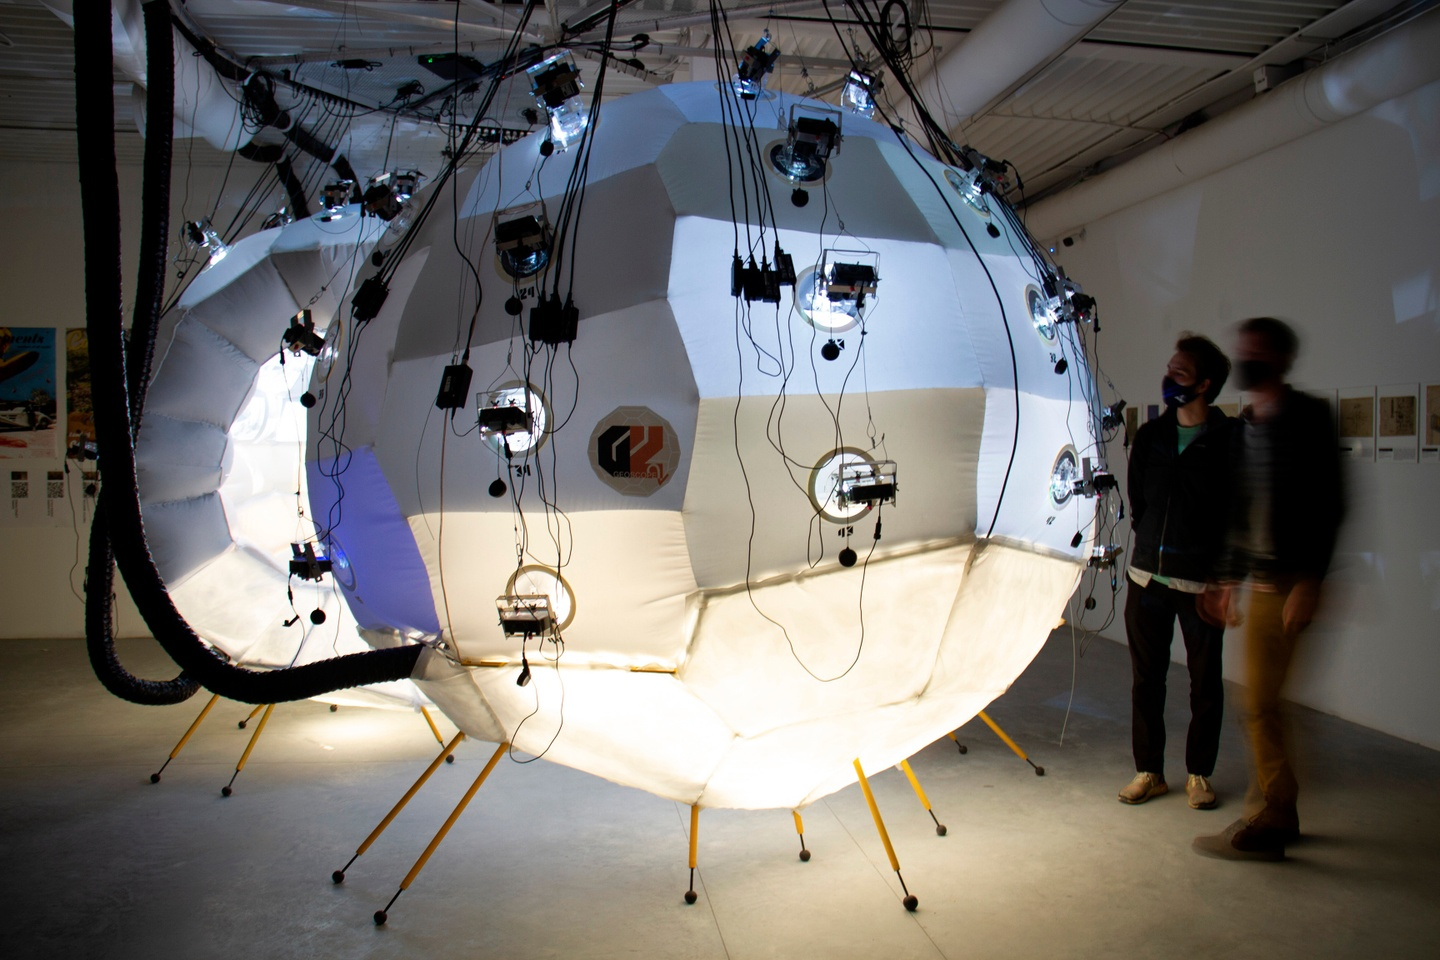 A split-sphere, multimedia installation in a darkened room, with two people looking at it. The sculptures are two large, seemingly inflatable paneled spheres, tied down with cords and lit from underneath, with rounded portholes for light and cameras.